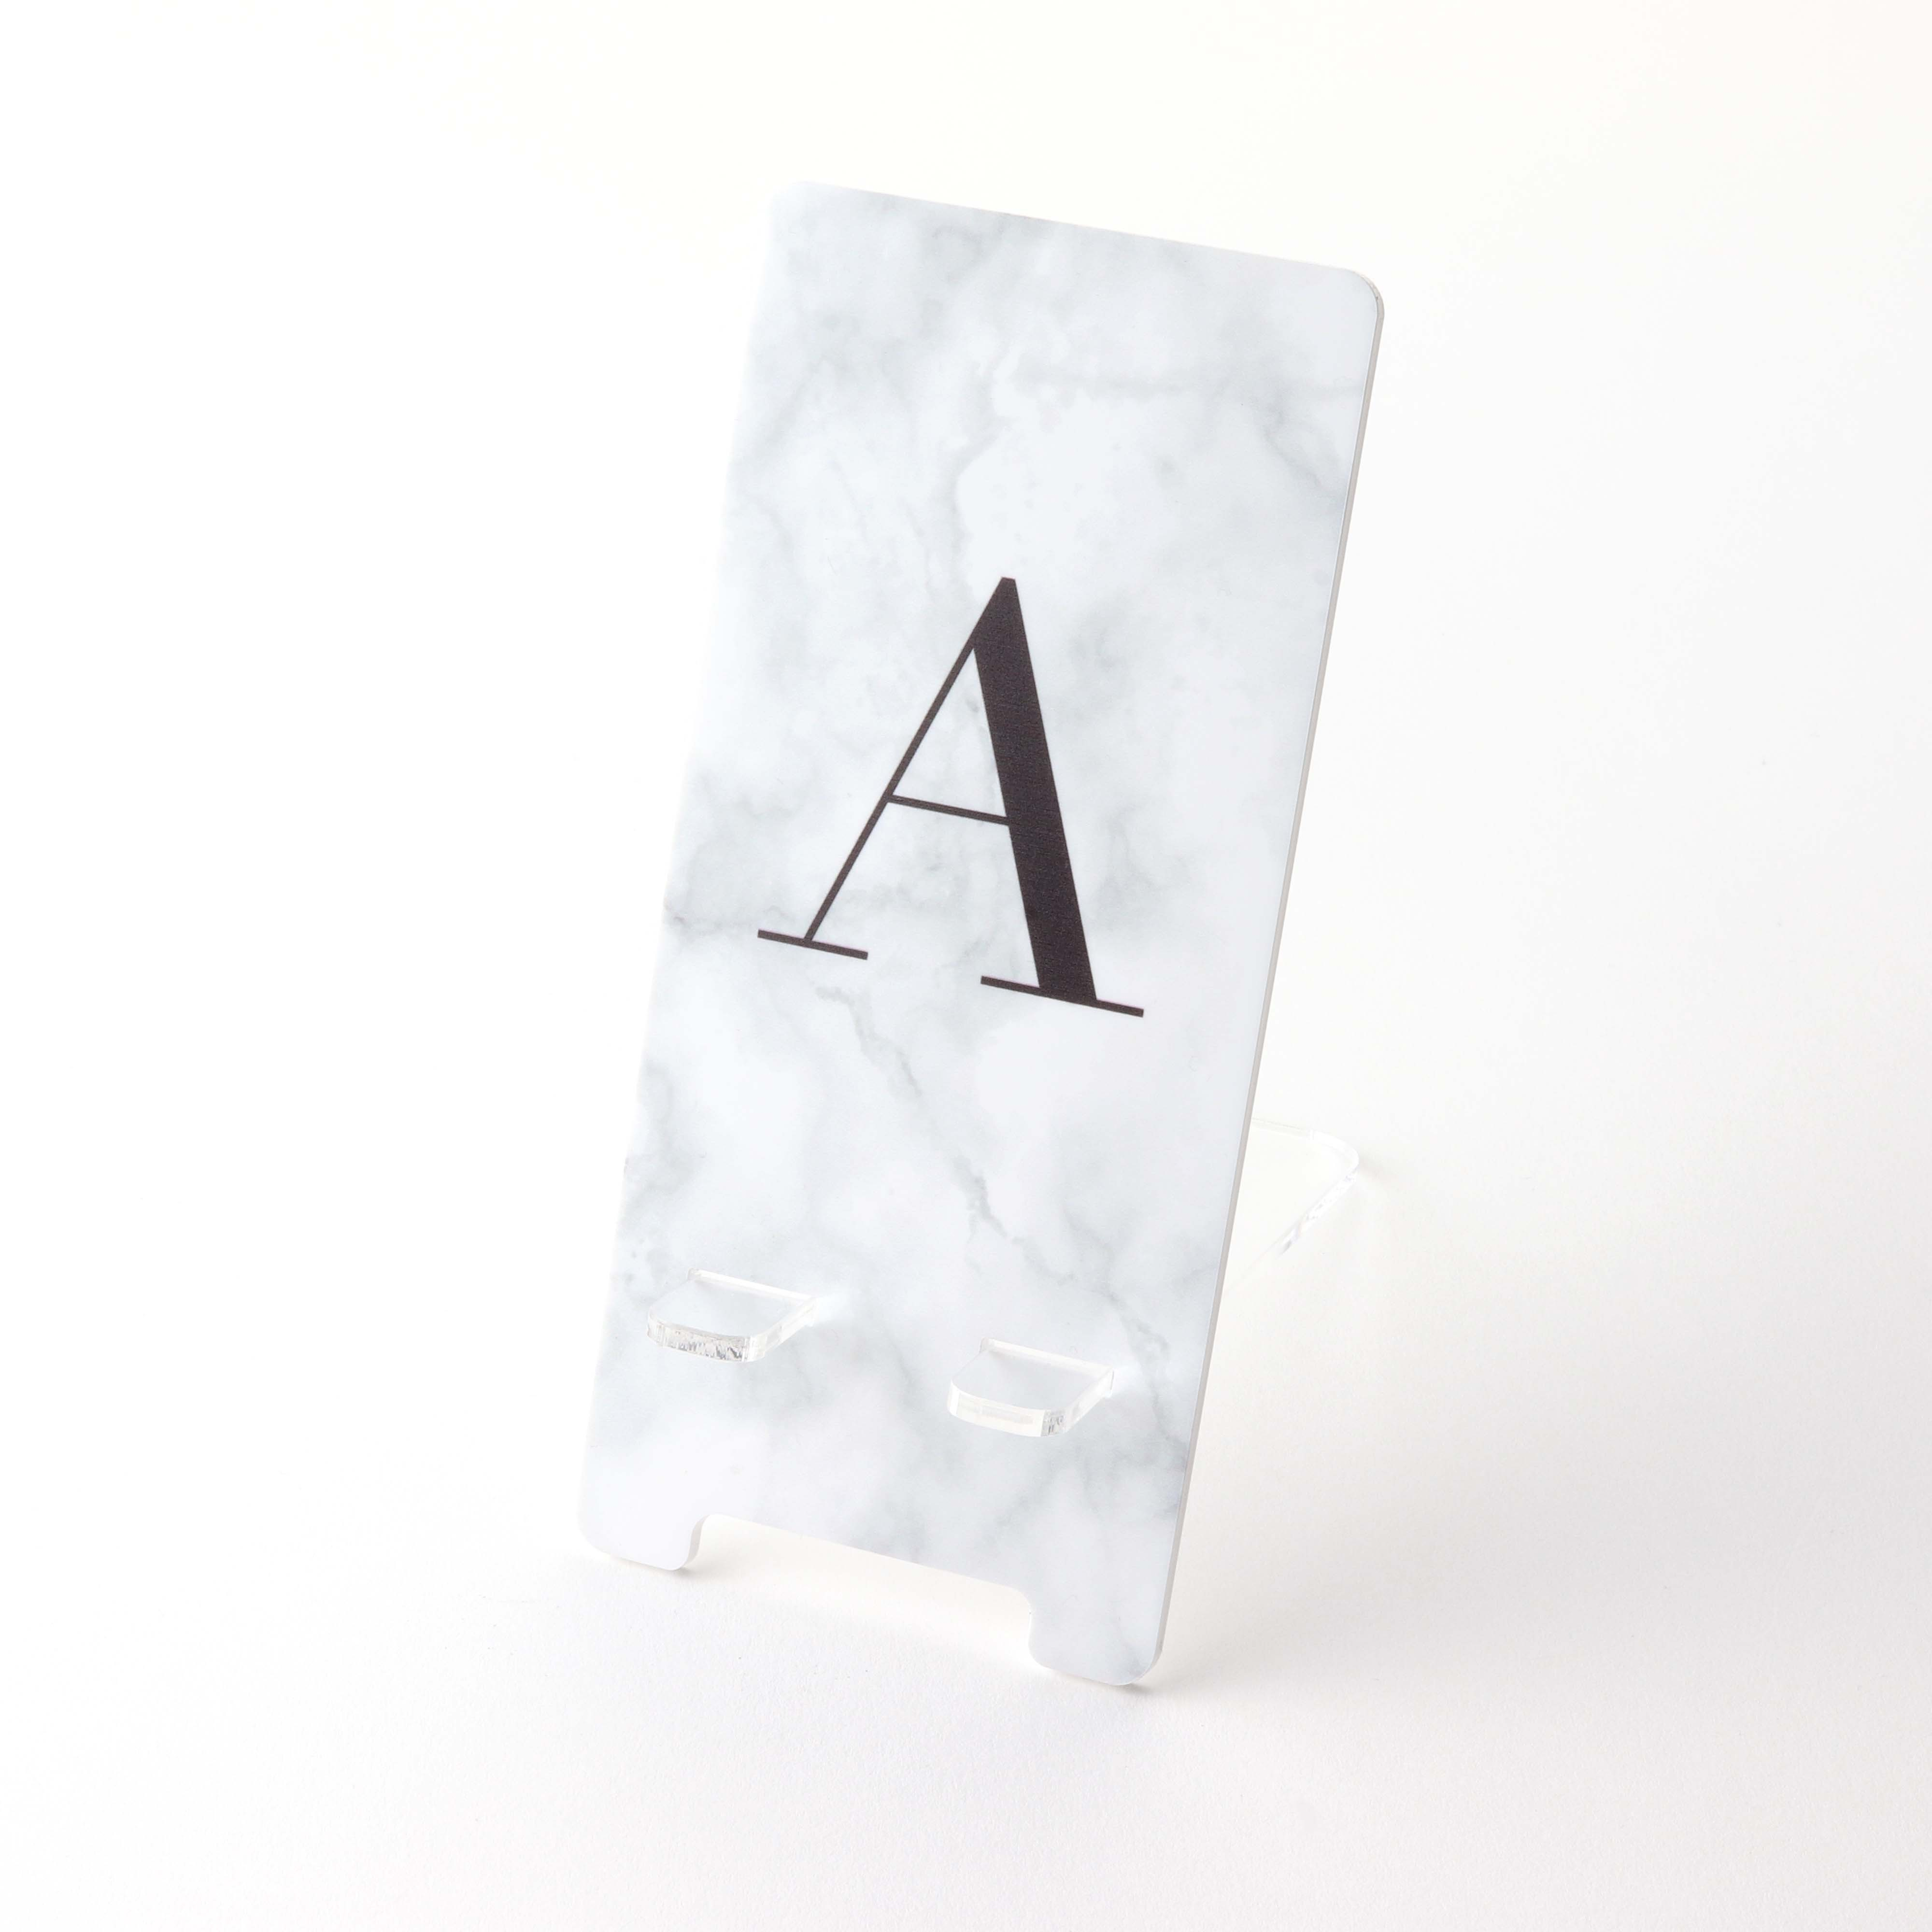 Printed Acrylic Mobile Phone Stand Marble Effect Monogrammed A